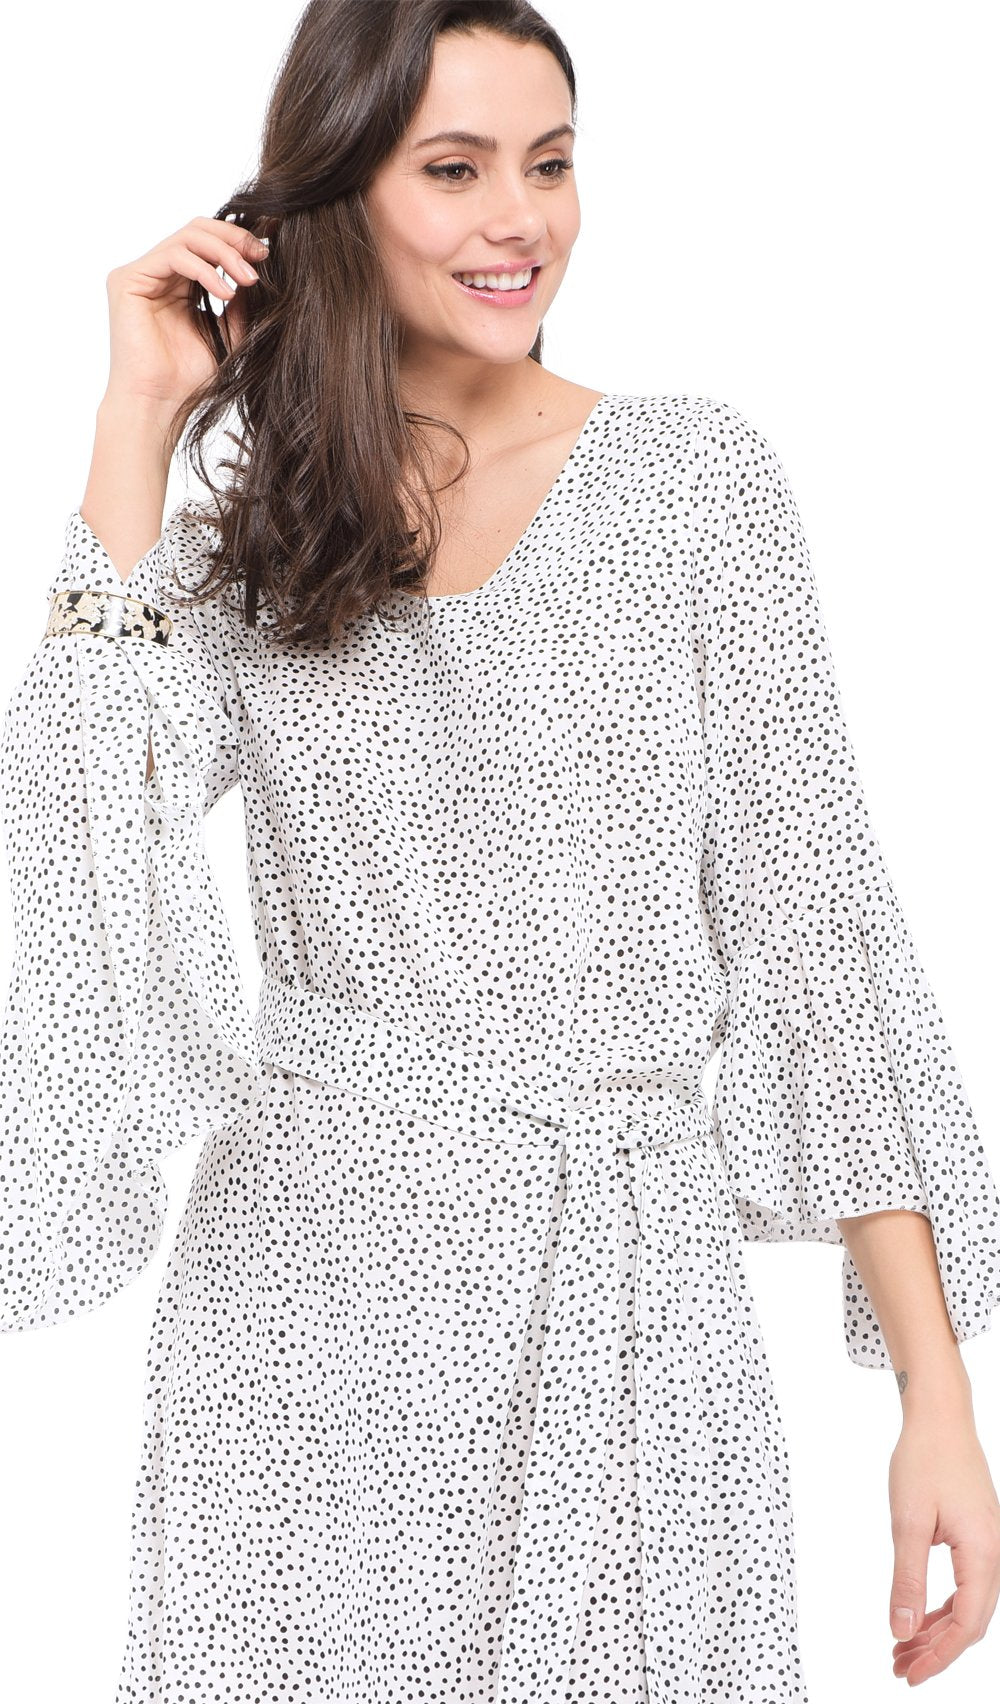 SHORT V-NECK DRESS WITH POLKA DOTS PRINT AND RUFFLED HALF-SLEEVES